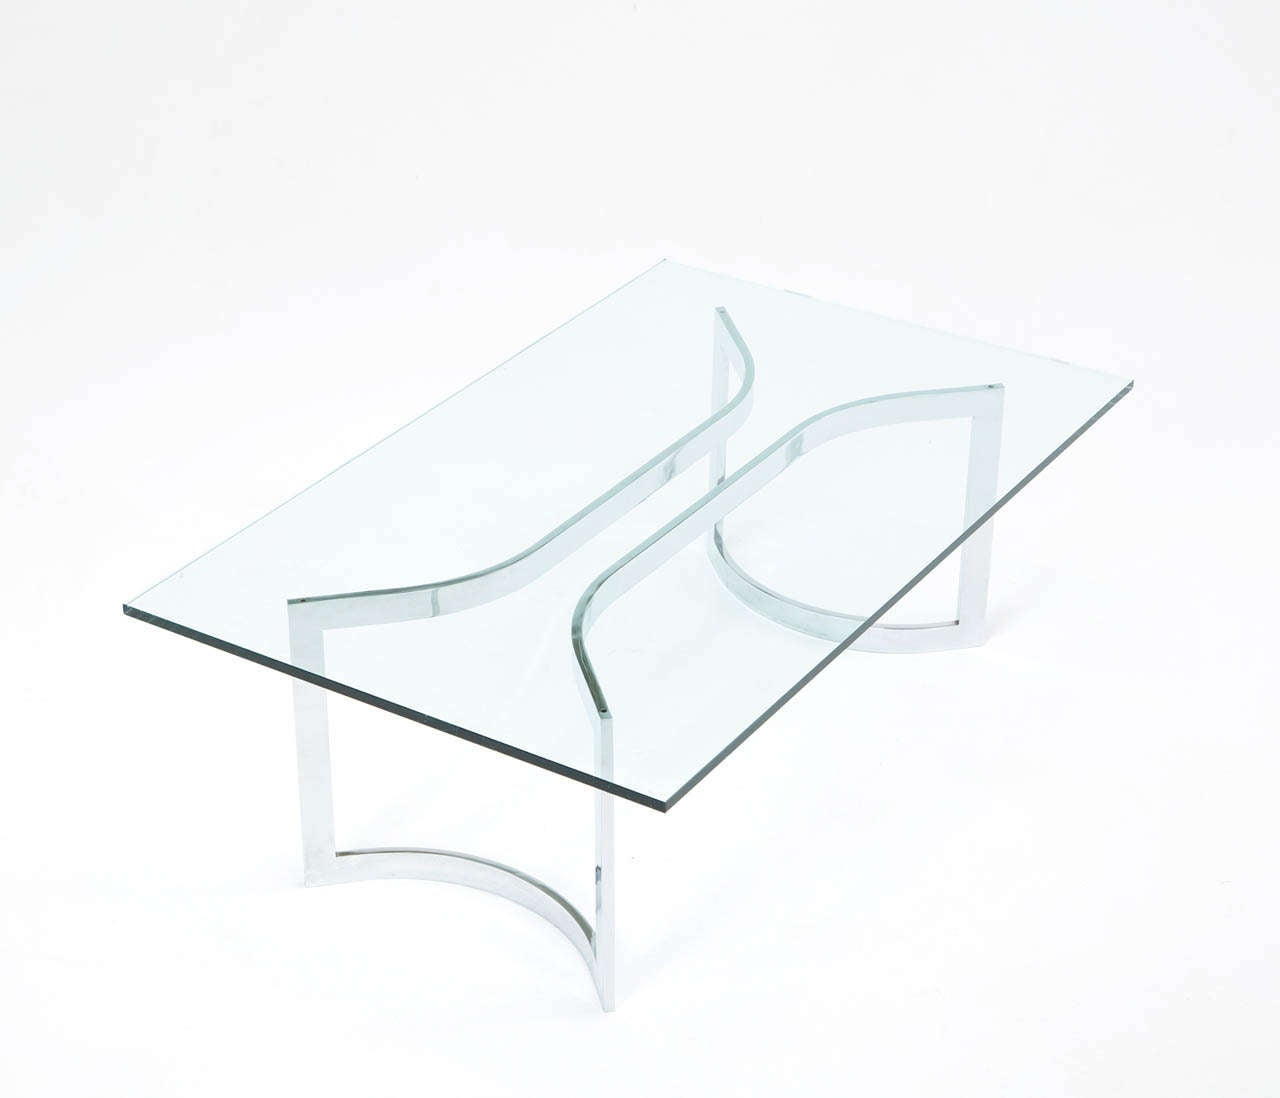 A Sculptural Mid-Century Chrome Plated Cocktail Table with rectangular glass top.   Free shipping for all European destinations and discounted shipping to all intercontinental destinations starting at $95, depending on the item of your selection.